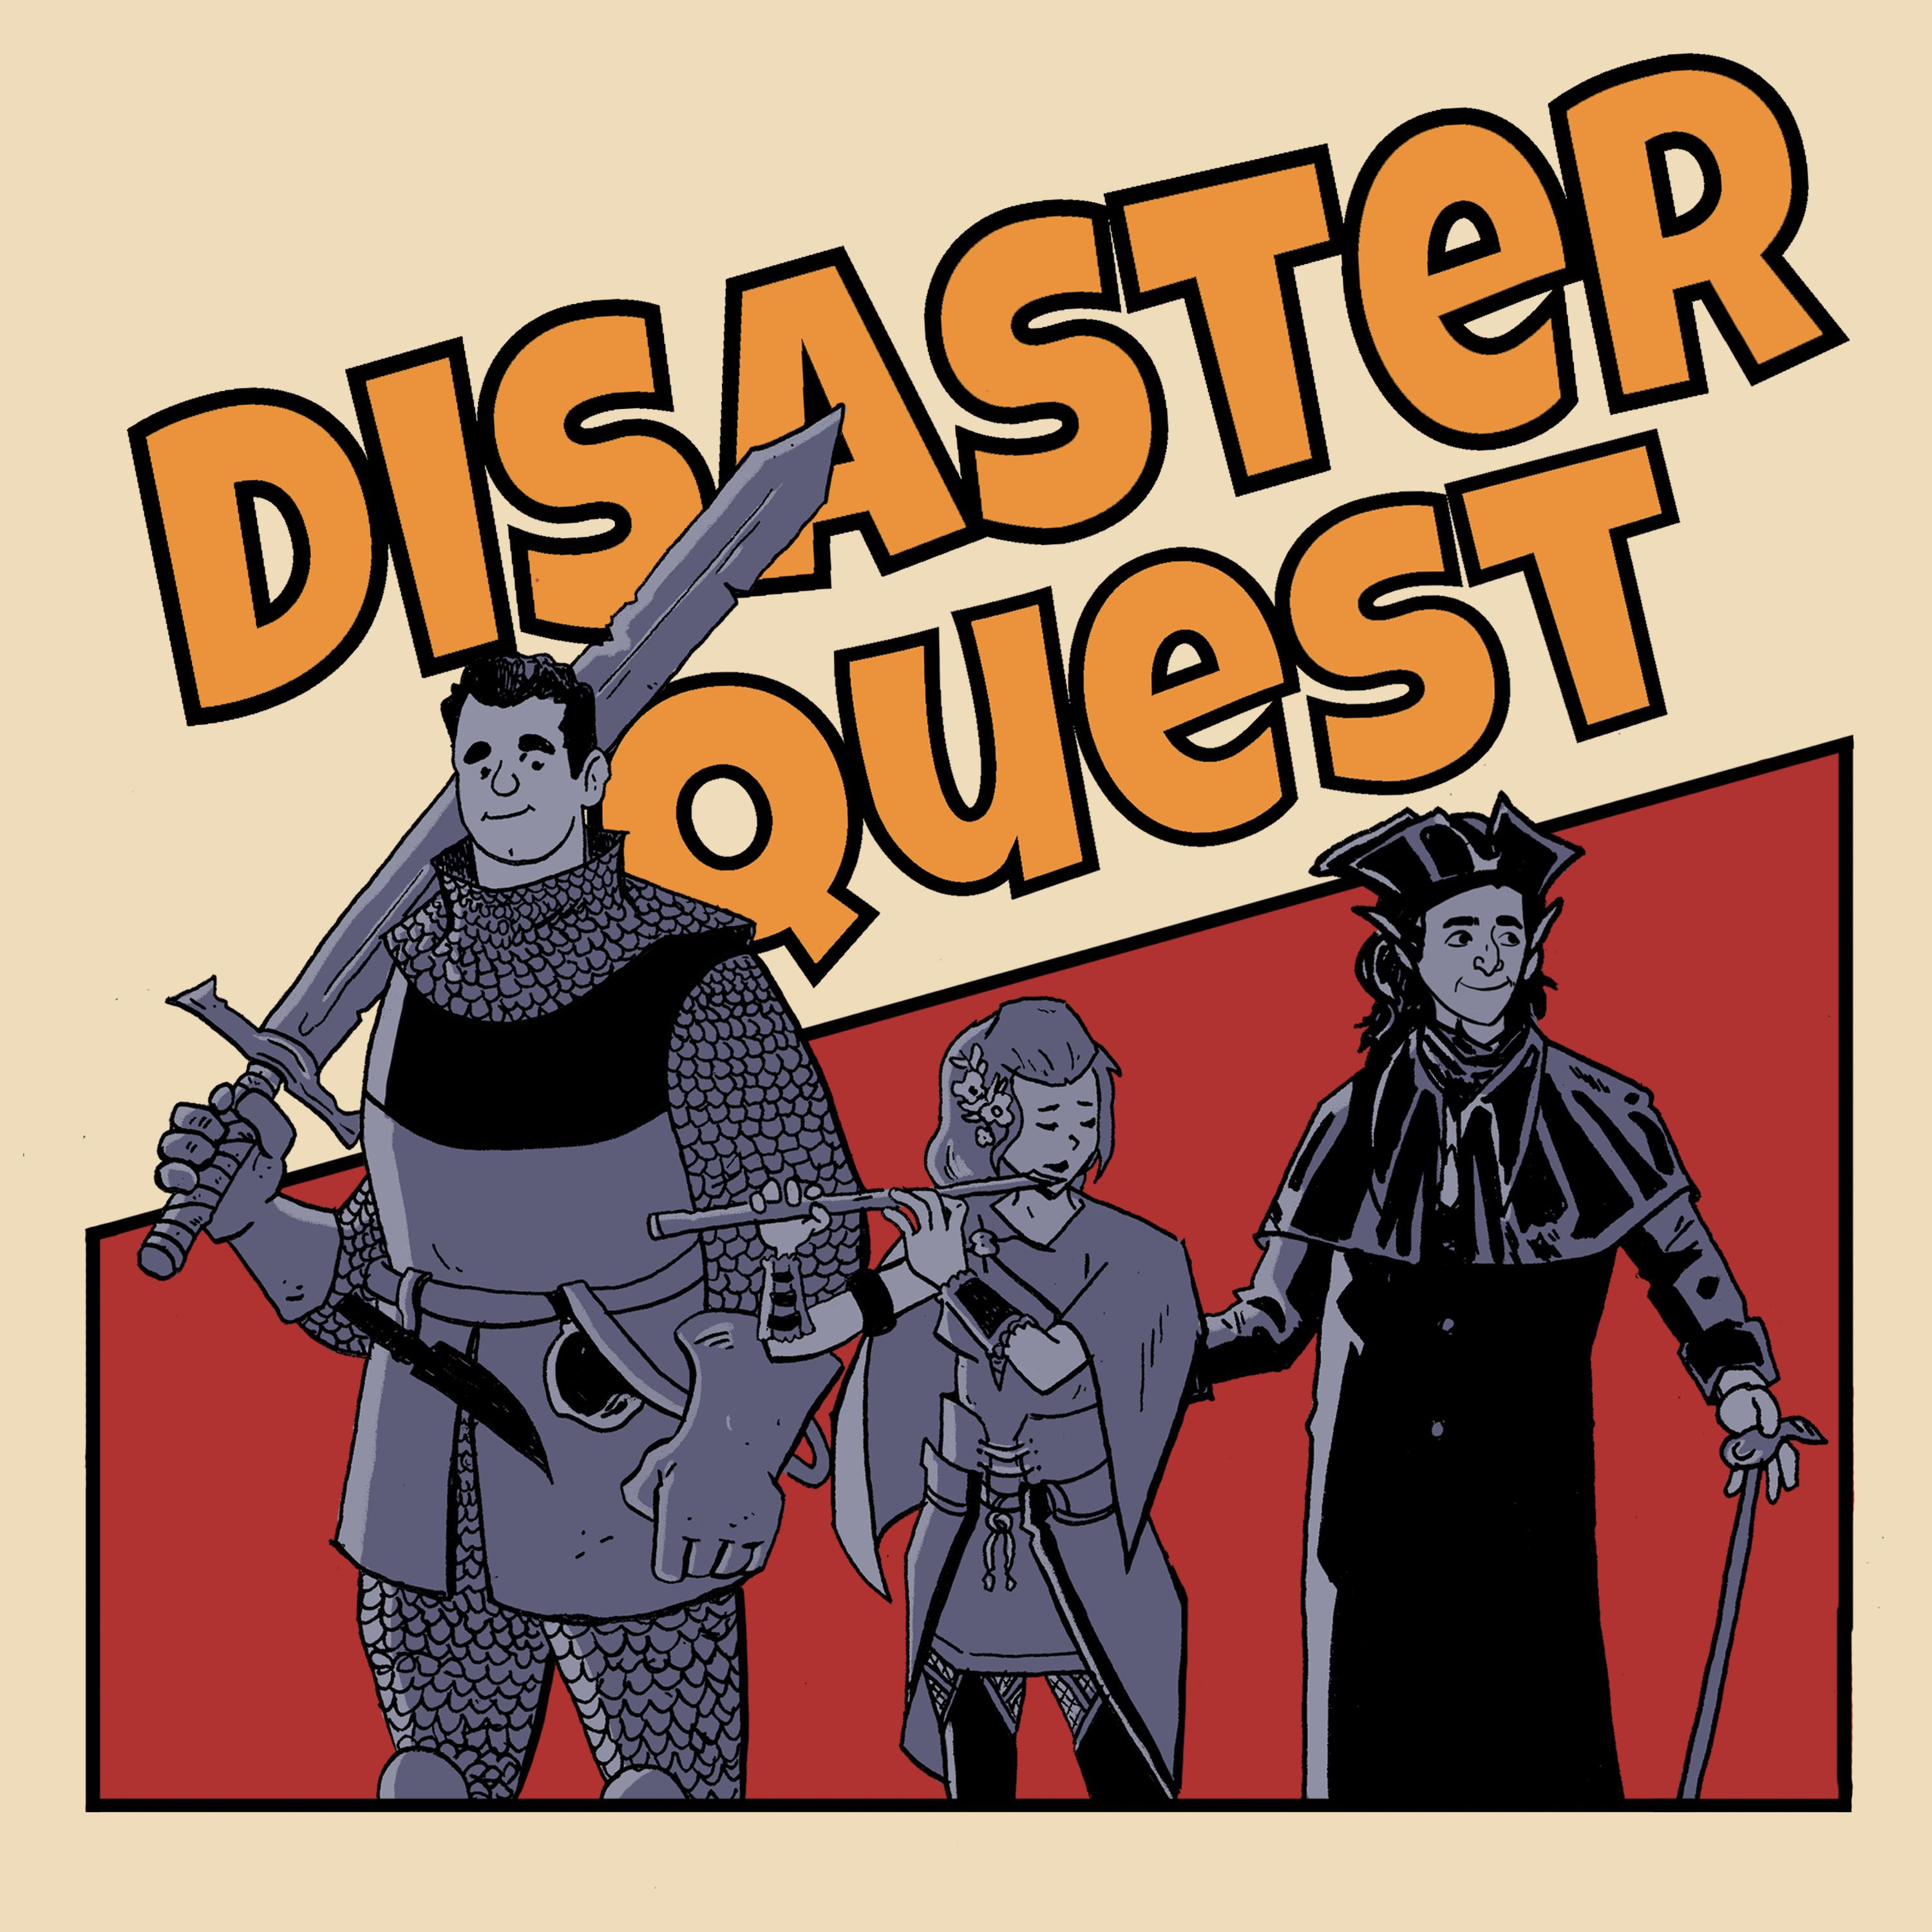 Episode 1: Prelude to Disaster